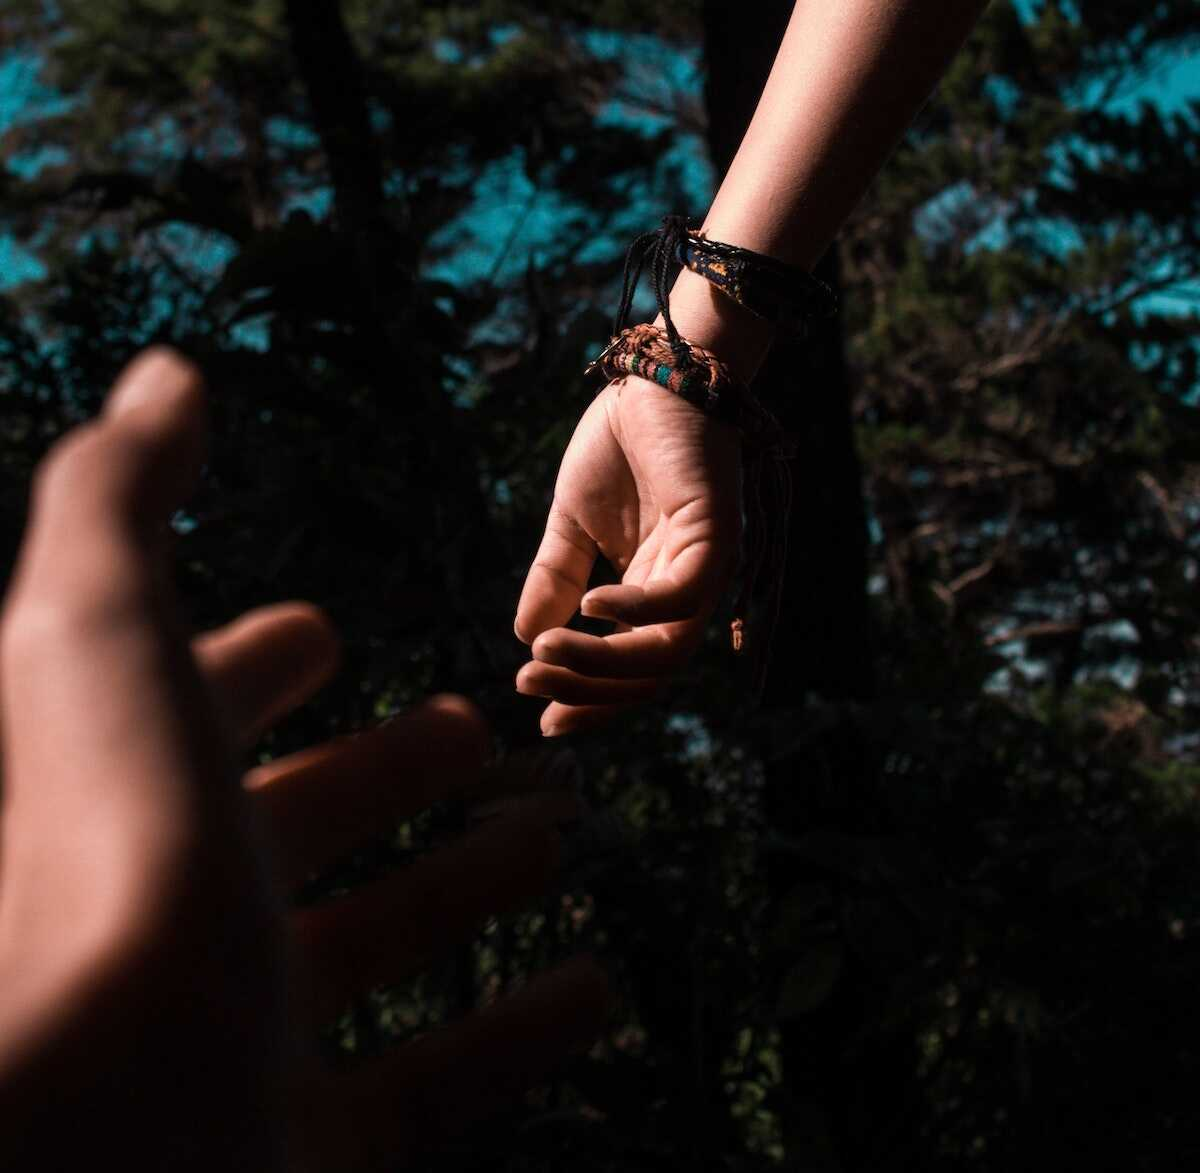 Two hands reaching out to one another